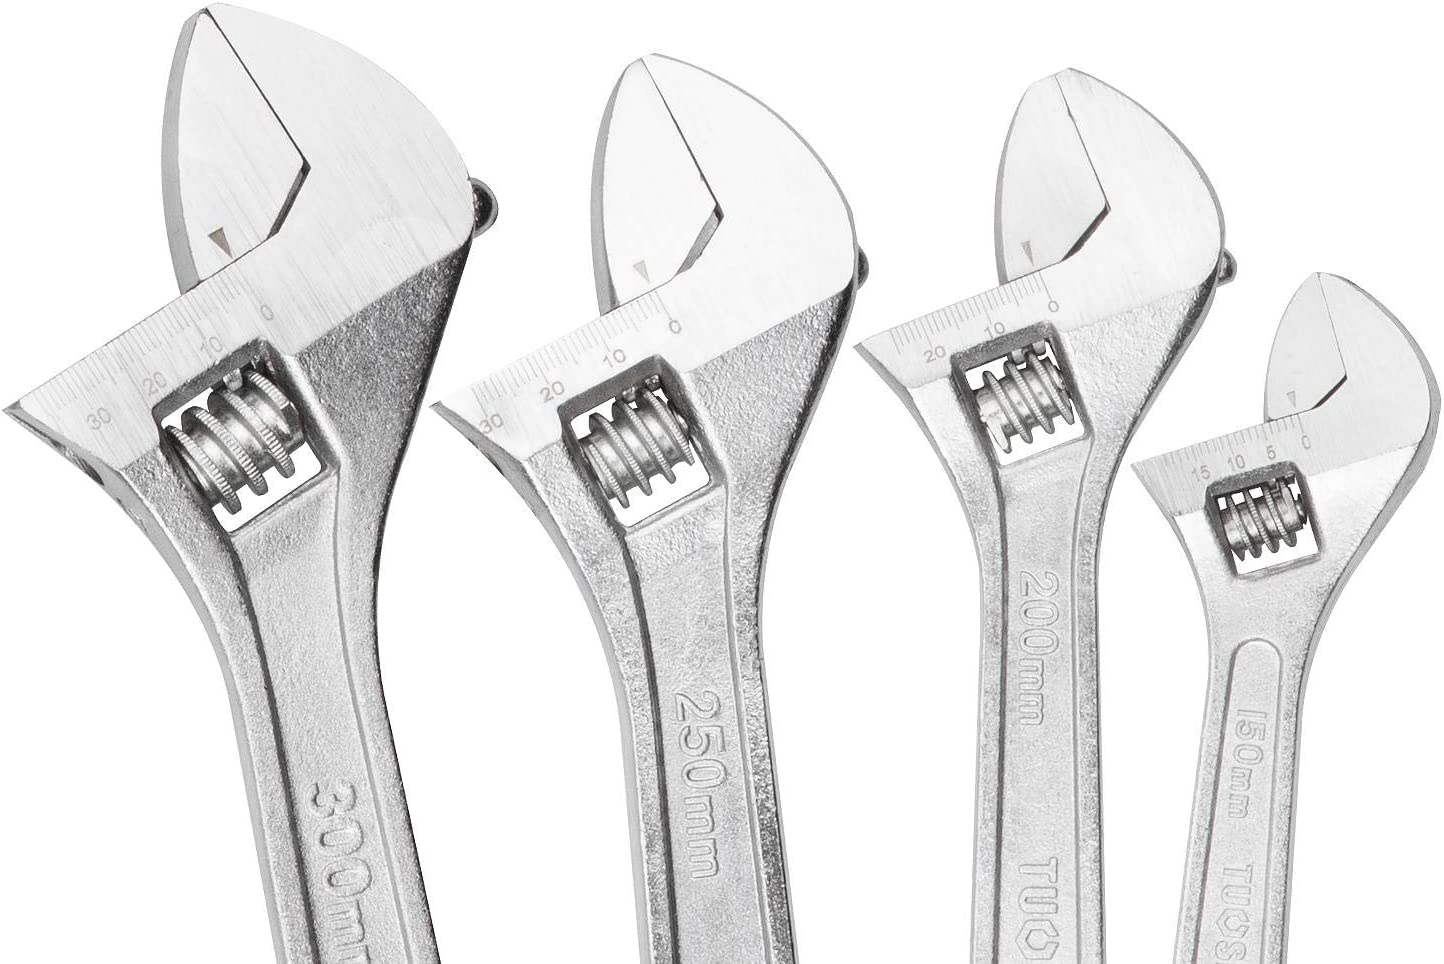 A Industrial Grade Shifter Movable Spanners Selected 4pcs Heavy Duty Adjustable Wrench Set 6-inch, 8-inch, 10-inch, 12-inch